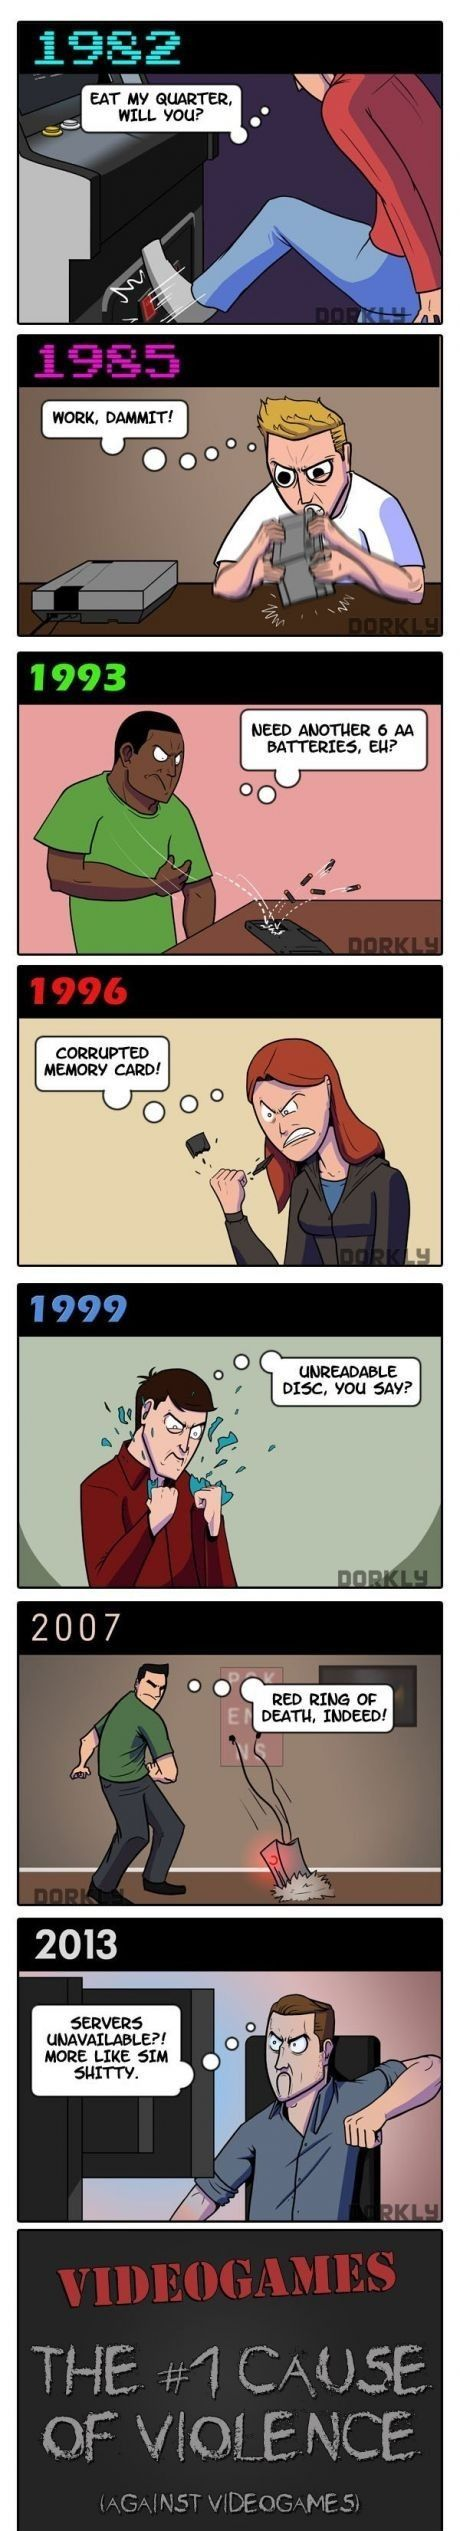 I definitely think some video games lead to more violent behavior, but this is totally hilarious. Growing up in the 80s, I still remember the anger management problems that ensued from your joystick being uncooperative LOL